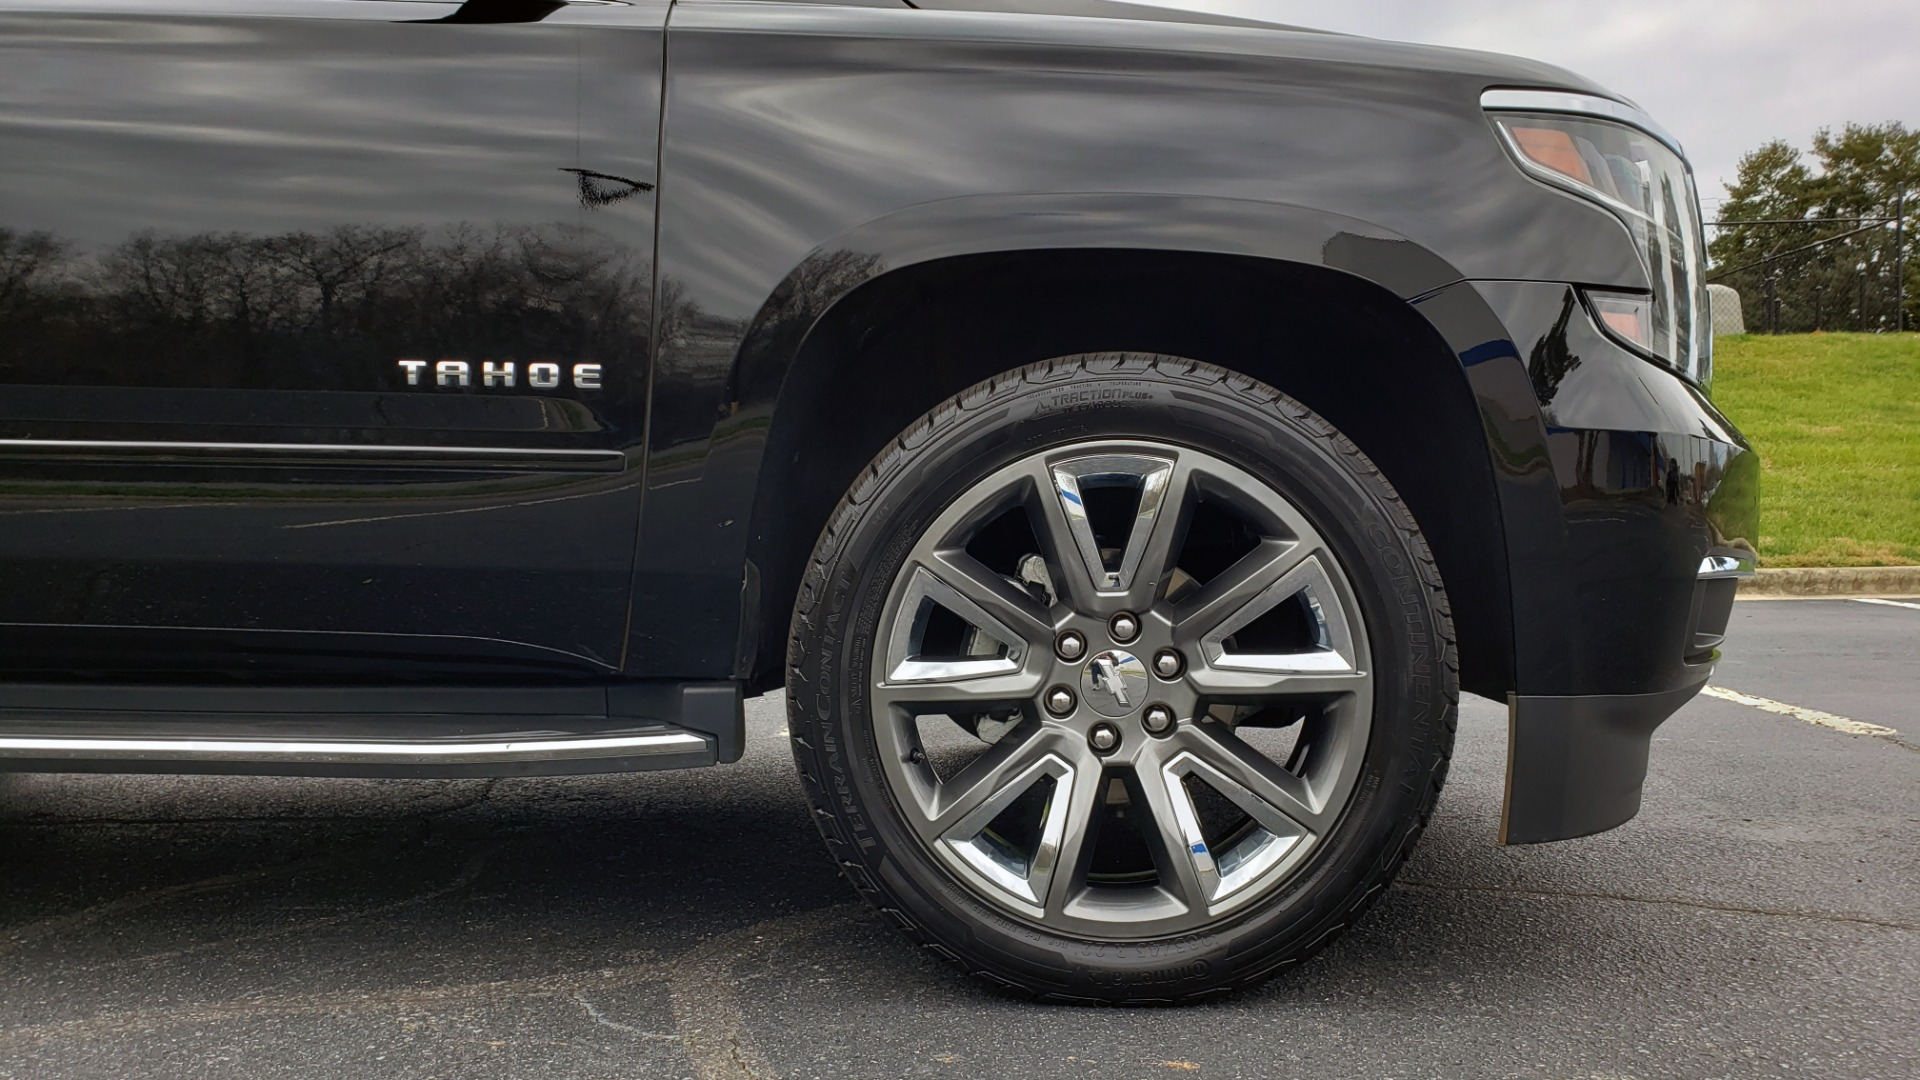 Used 2017 Chevrolet TAHOE PREMIER 4WD / NAV / SNRF / ENTERT / REARVIEW / 3-ROW for sale Sold at Formula Imports in Charlotte NC 28227 83